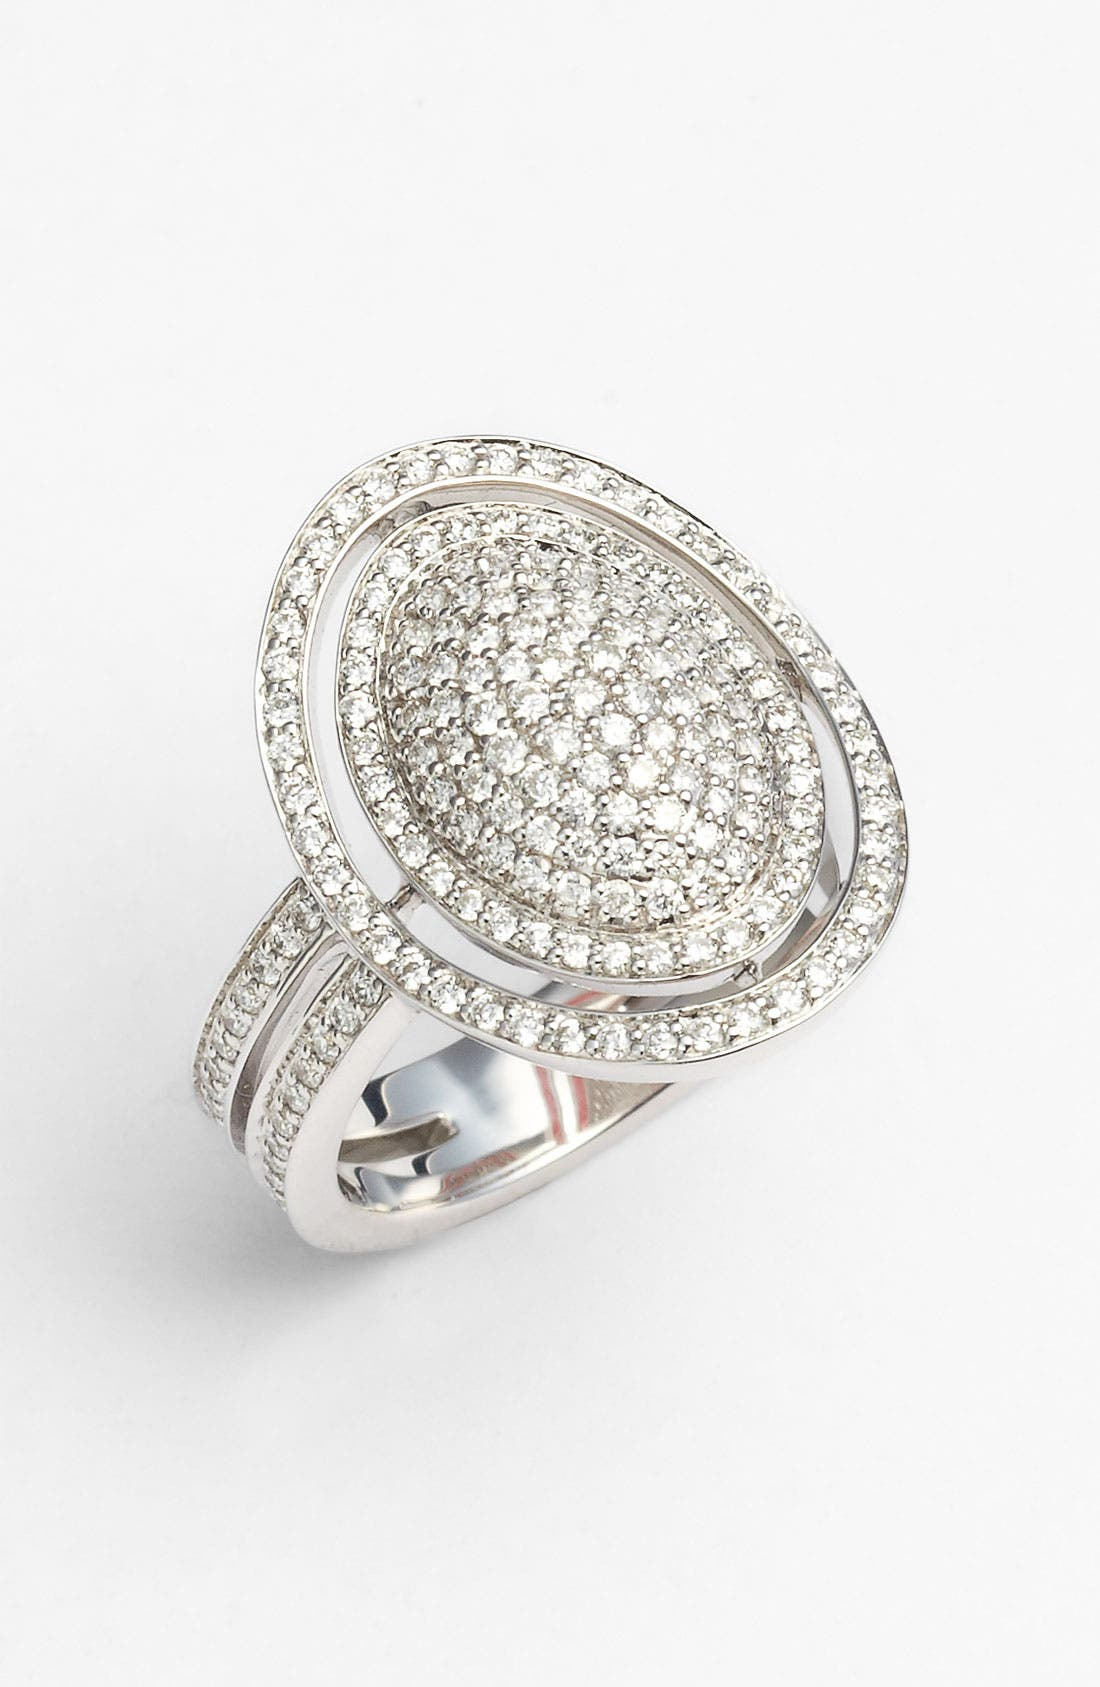 Main Image - Ivanka Trump 'Signature' Pavé Diamond Ring